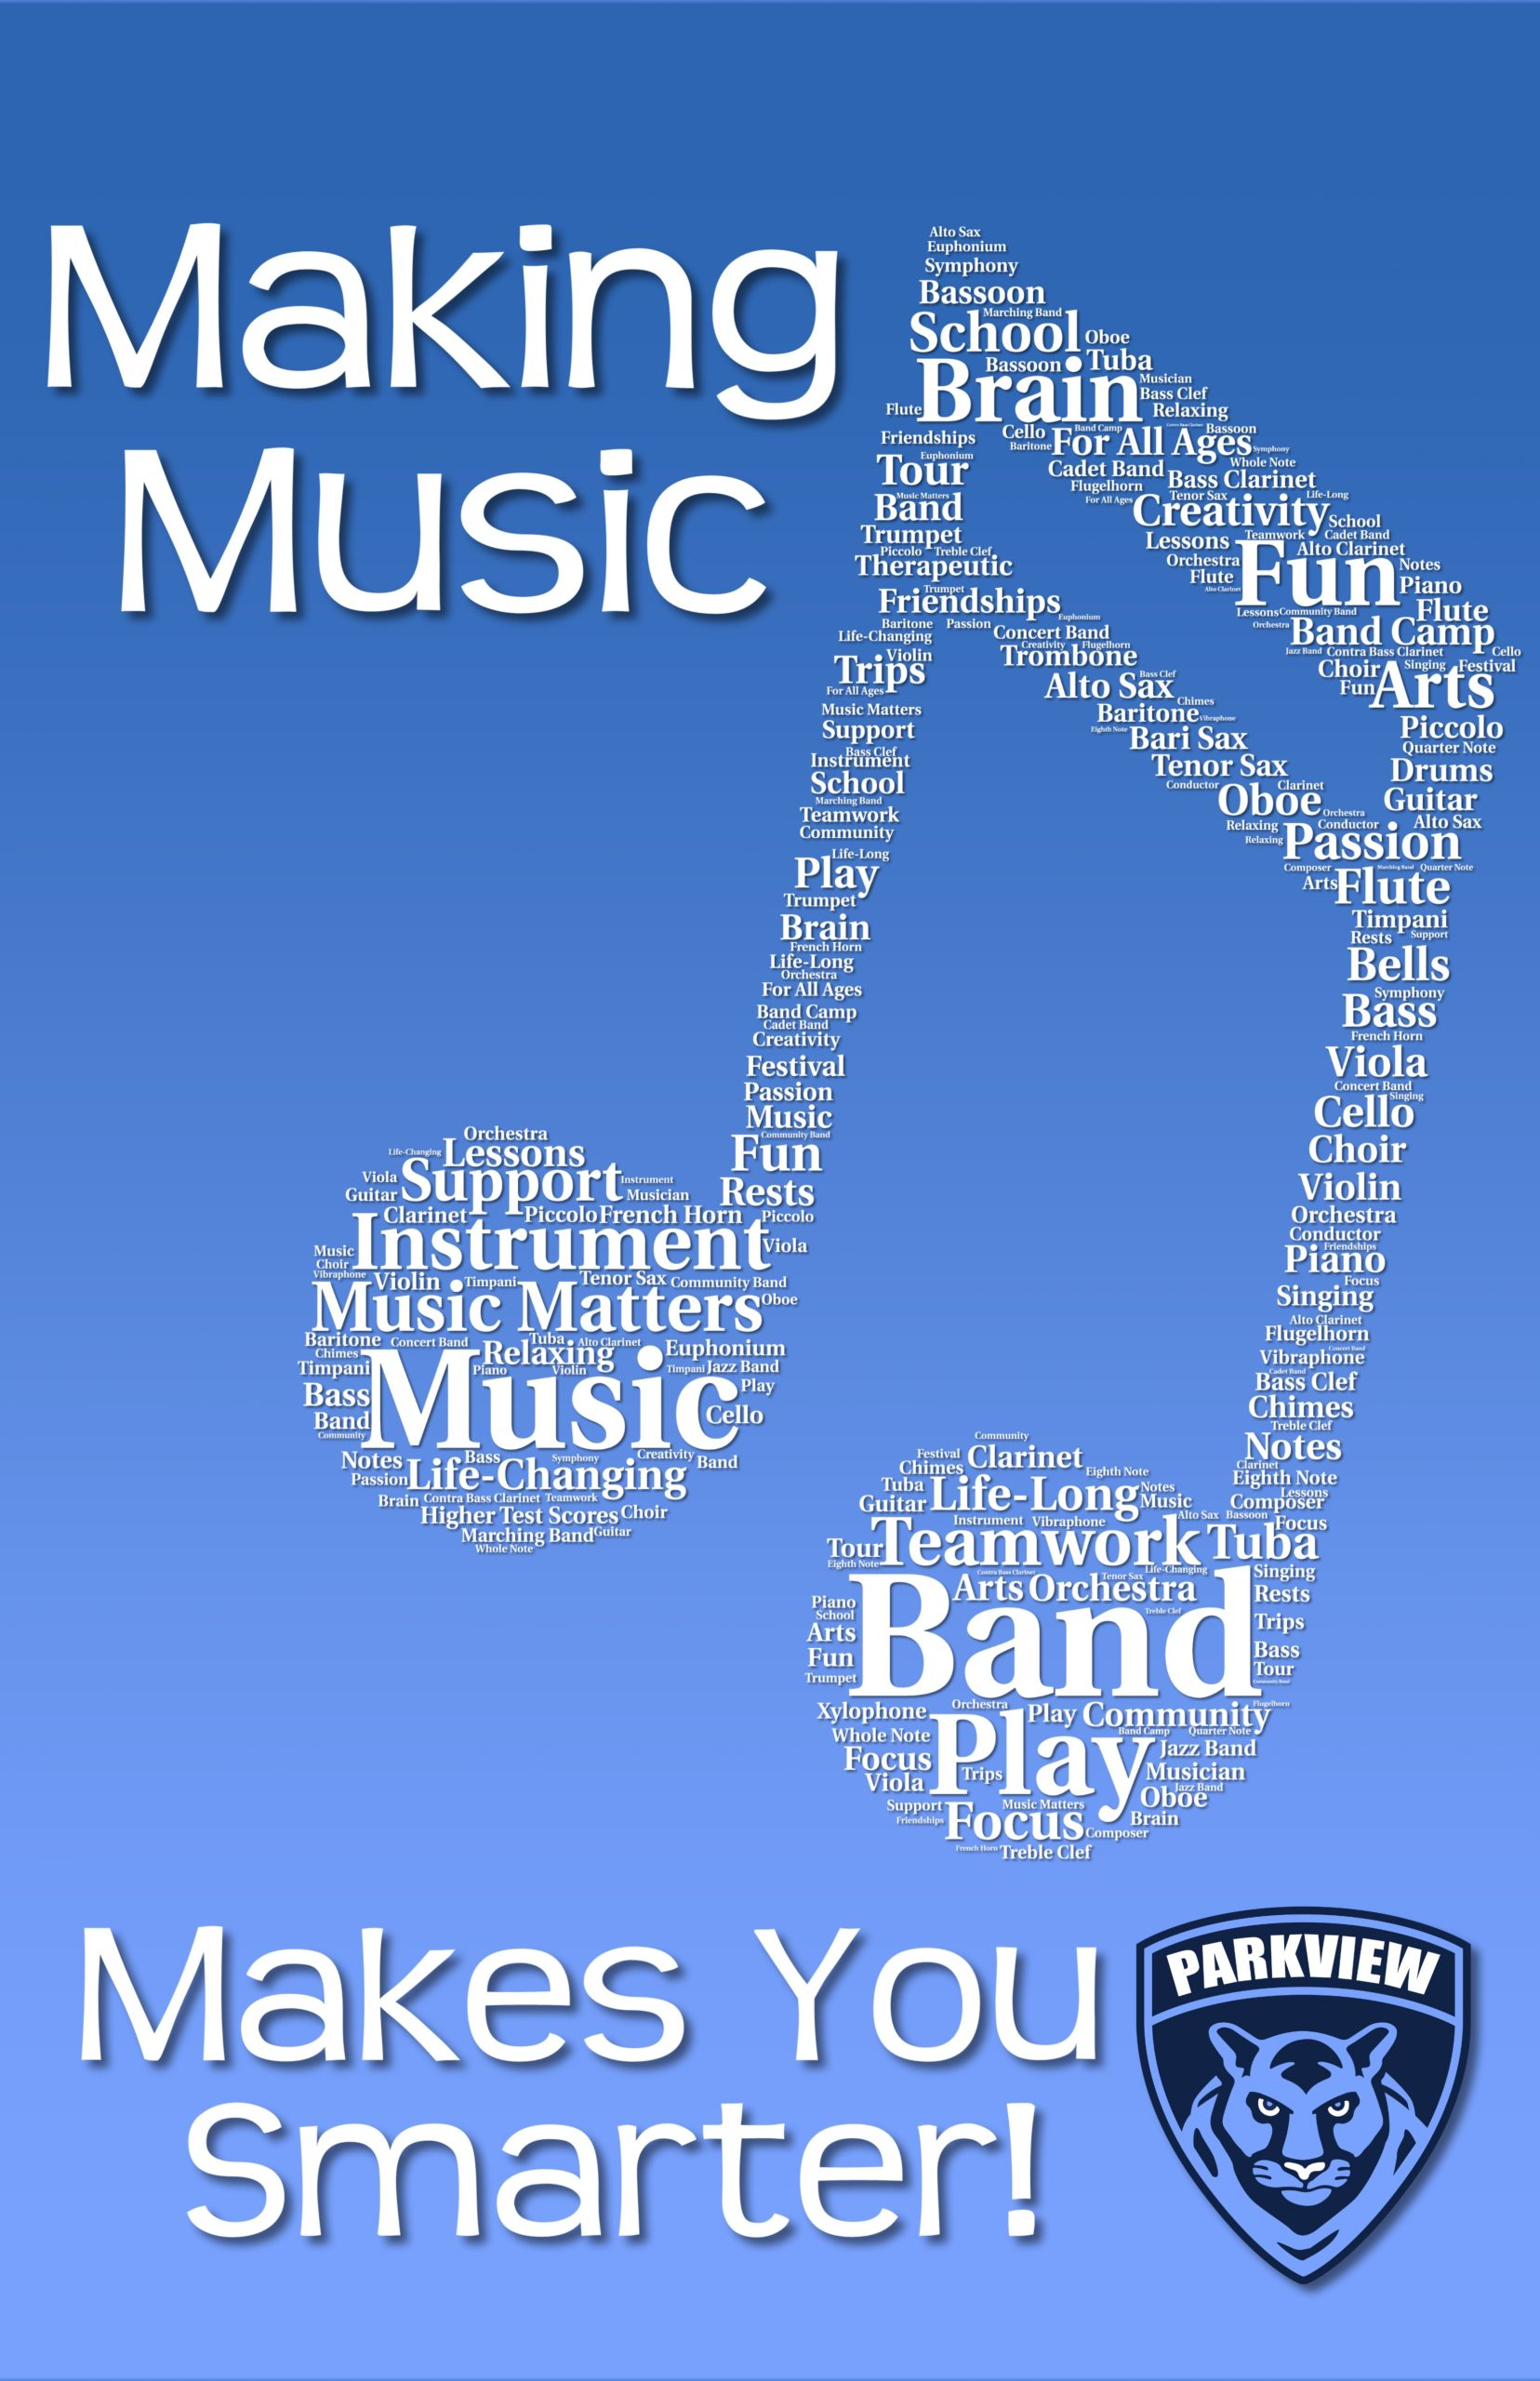 Parkview Music makes You Smarter Poster